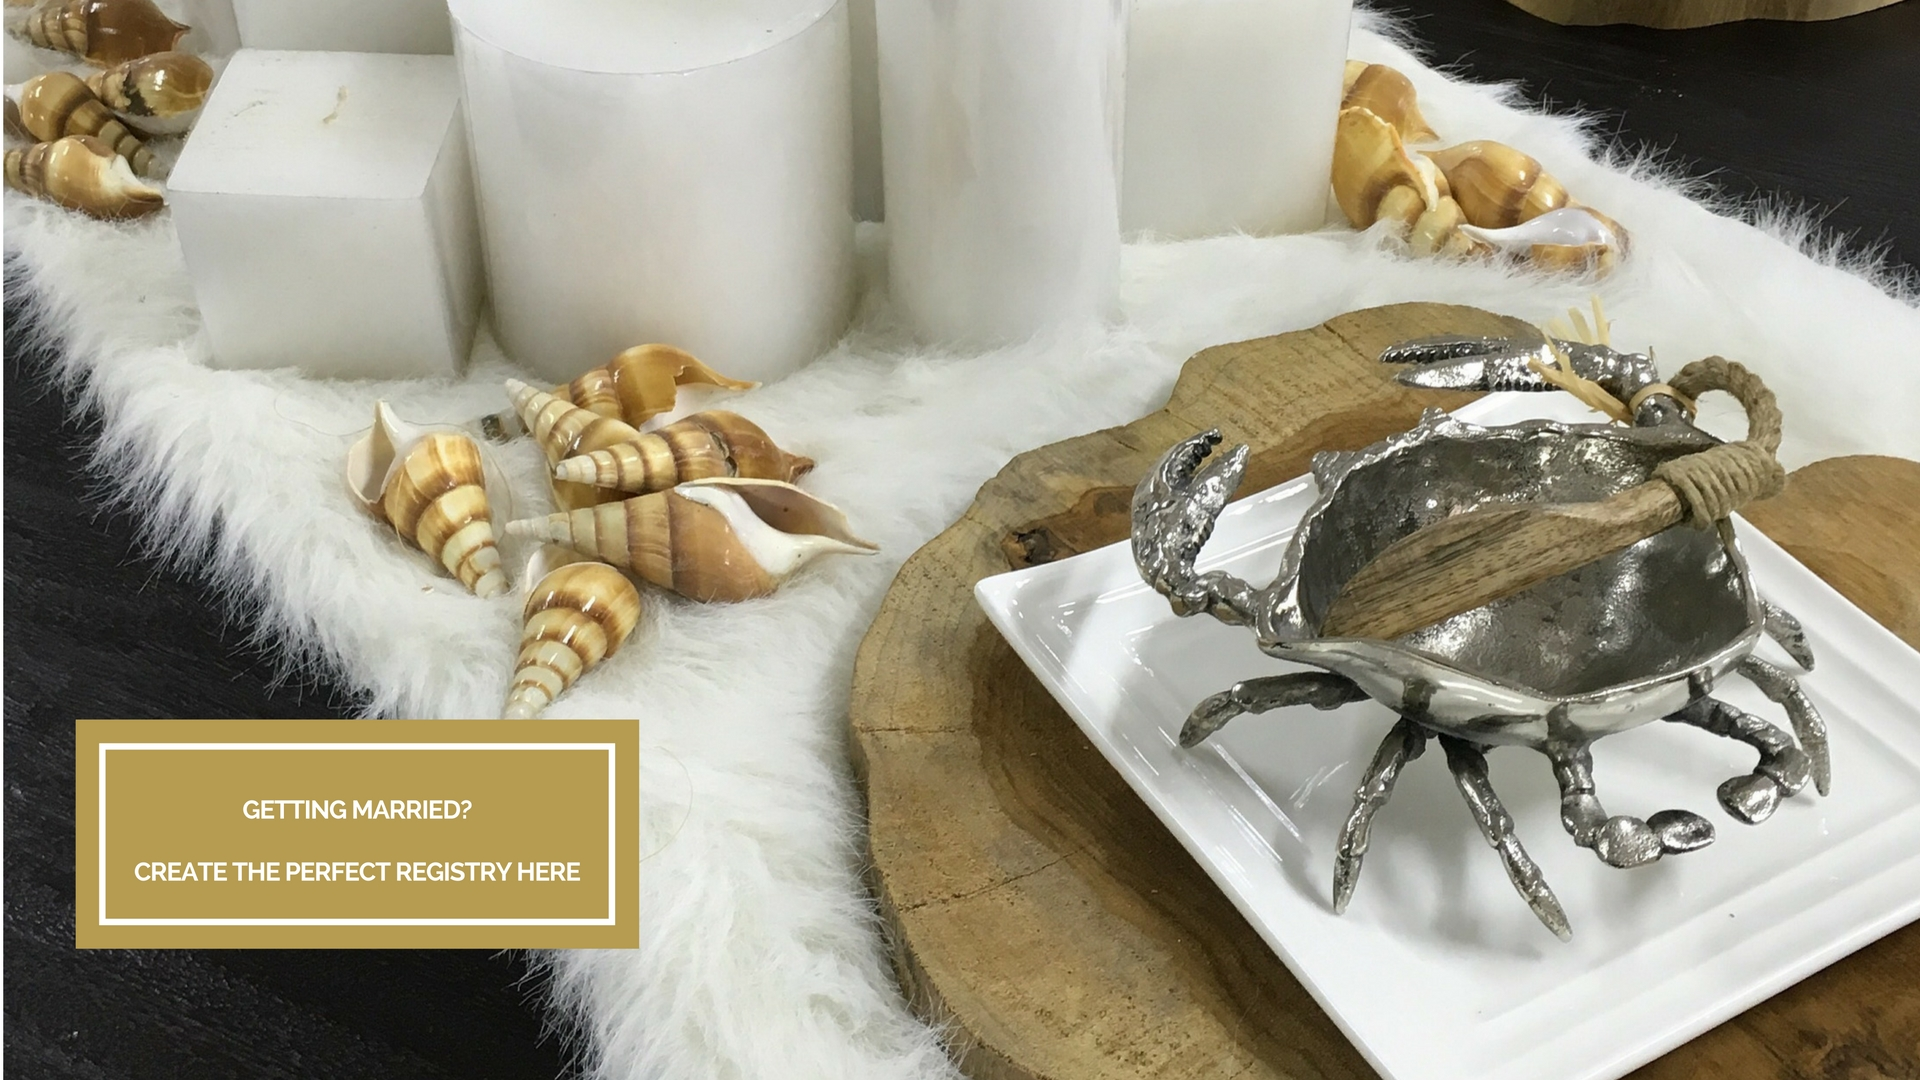 Wedding Gift Registry Website: Home Furnishing And Decor With A